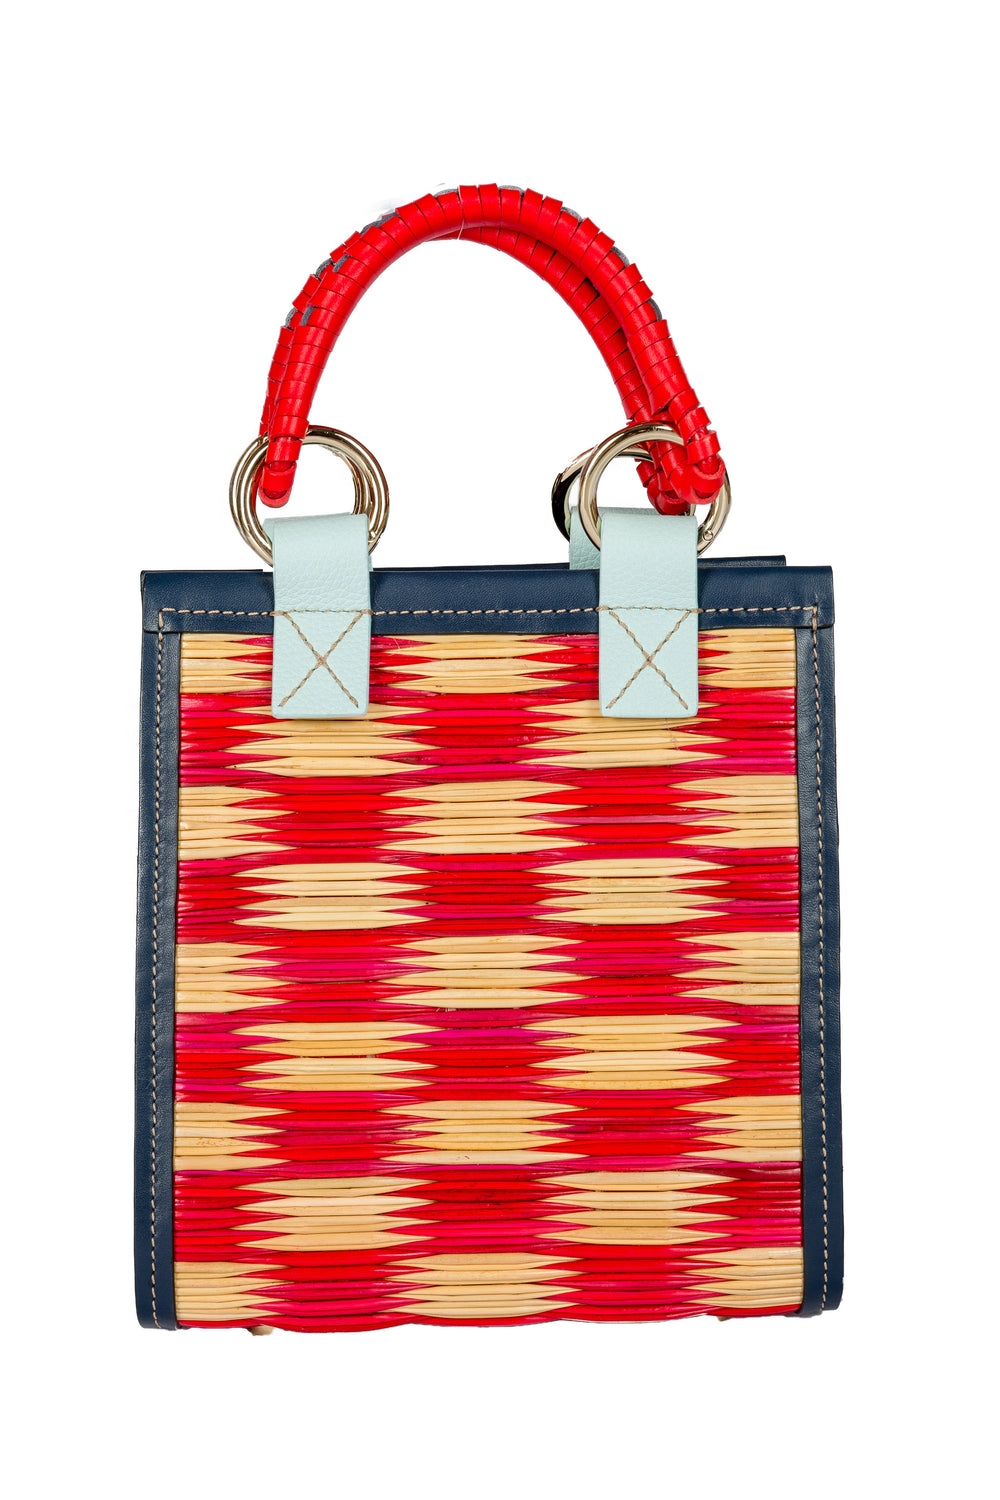 G bag red and navy - LAST ONE!